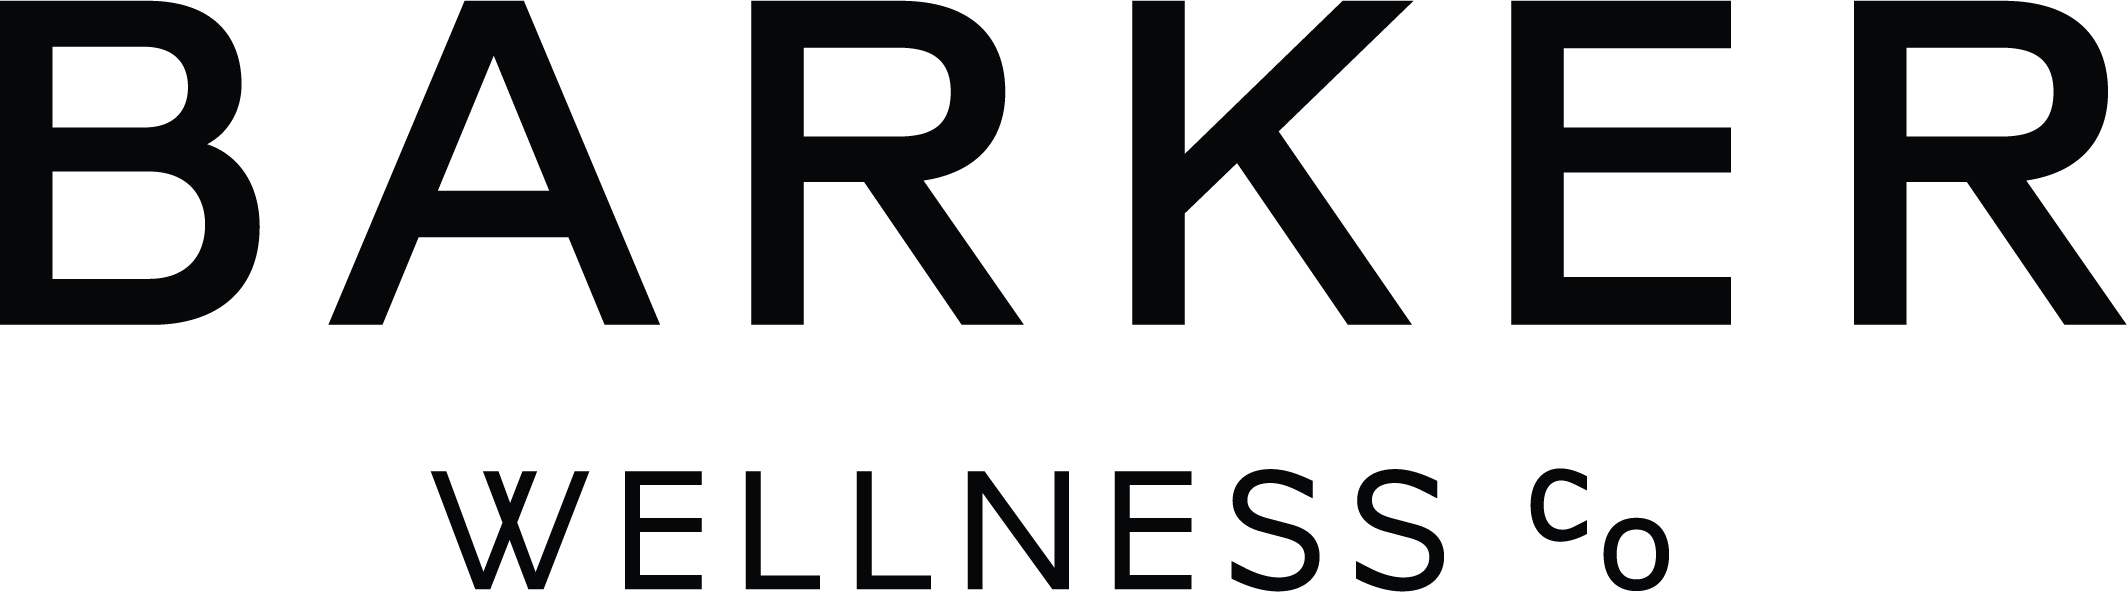 Barker Wellness Co Coupons & Promo codes